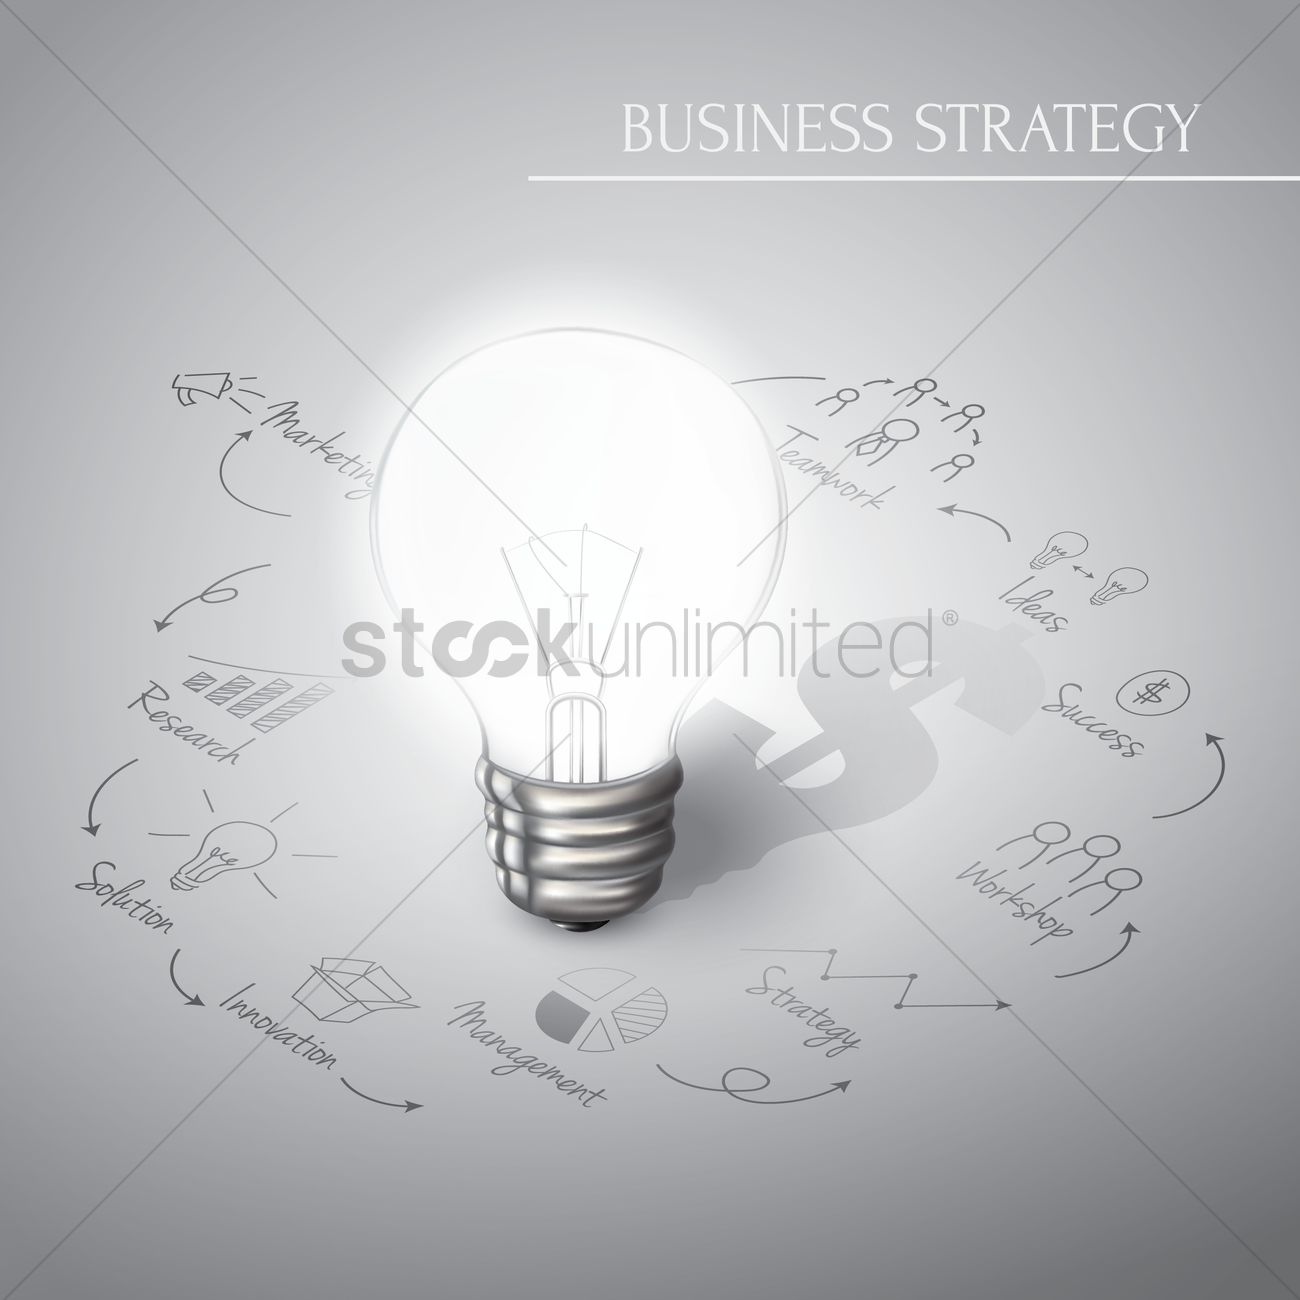 Business strategy diagram concept Vector Image - 1964618